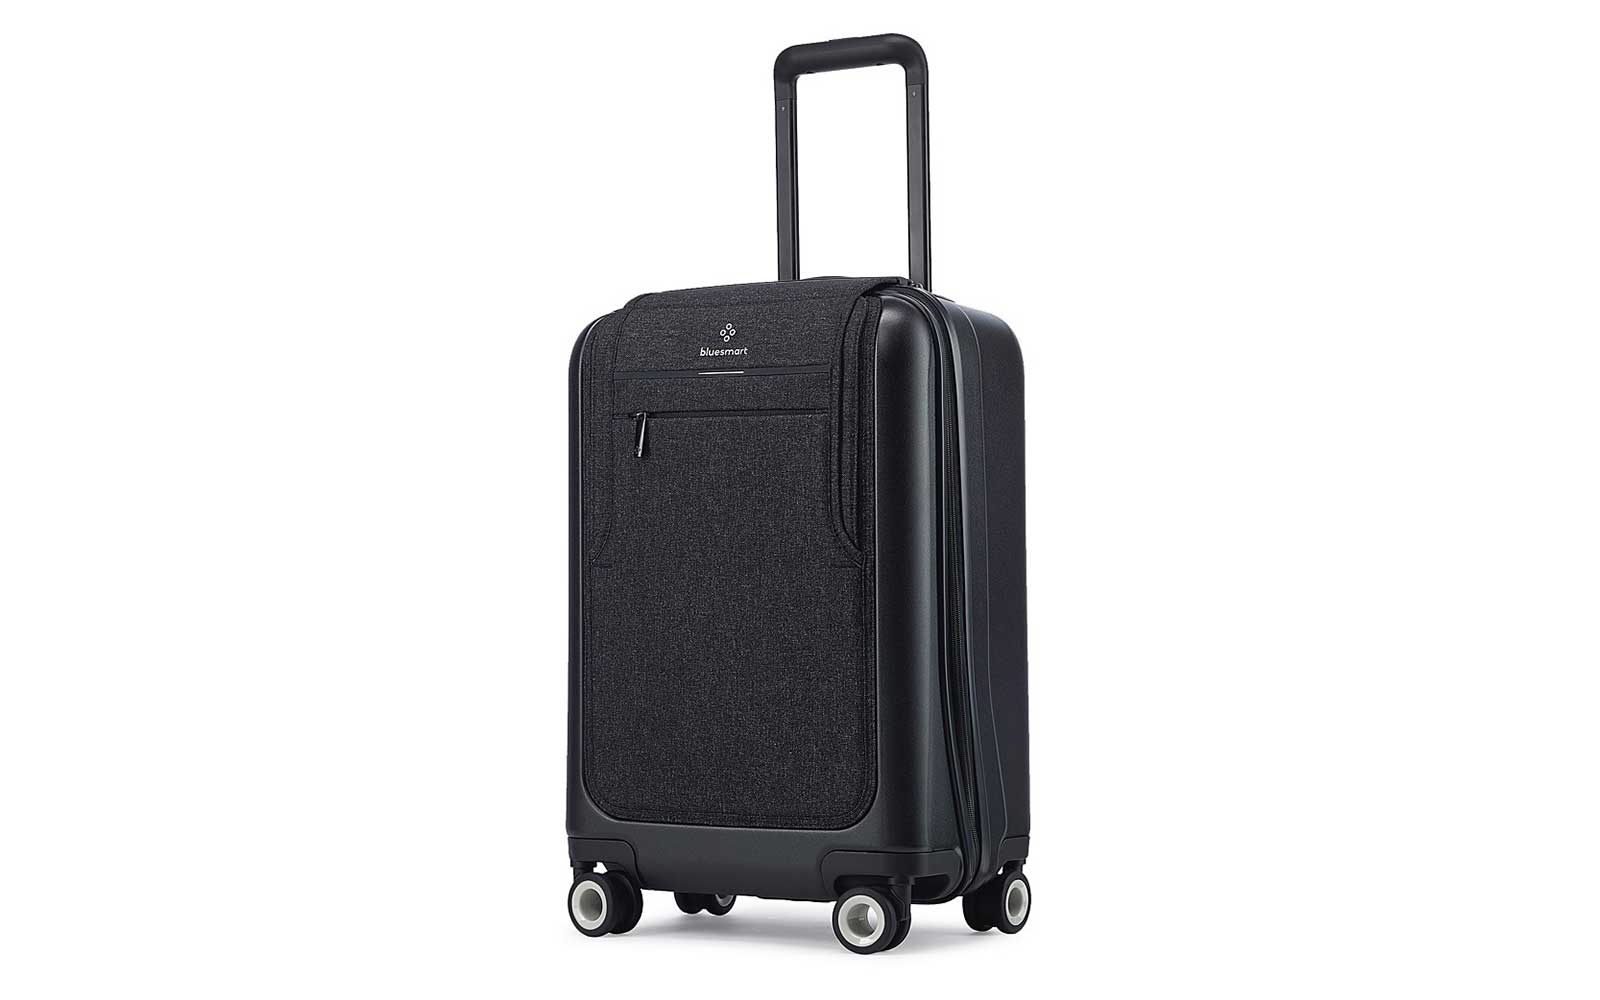 Bluesmart Suitcase from Bloomingdale's